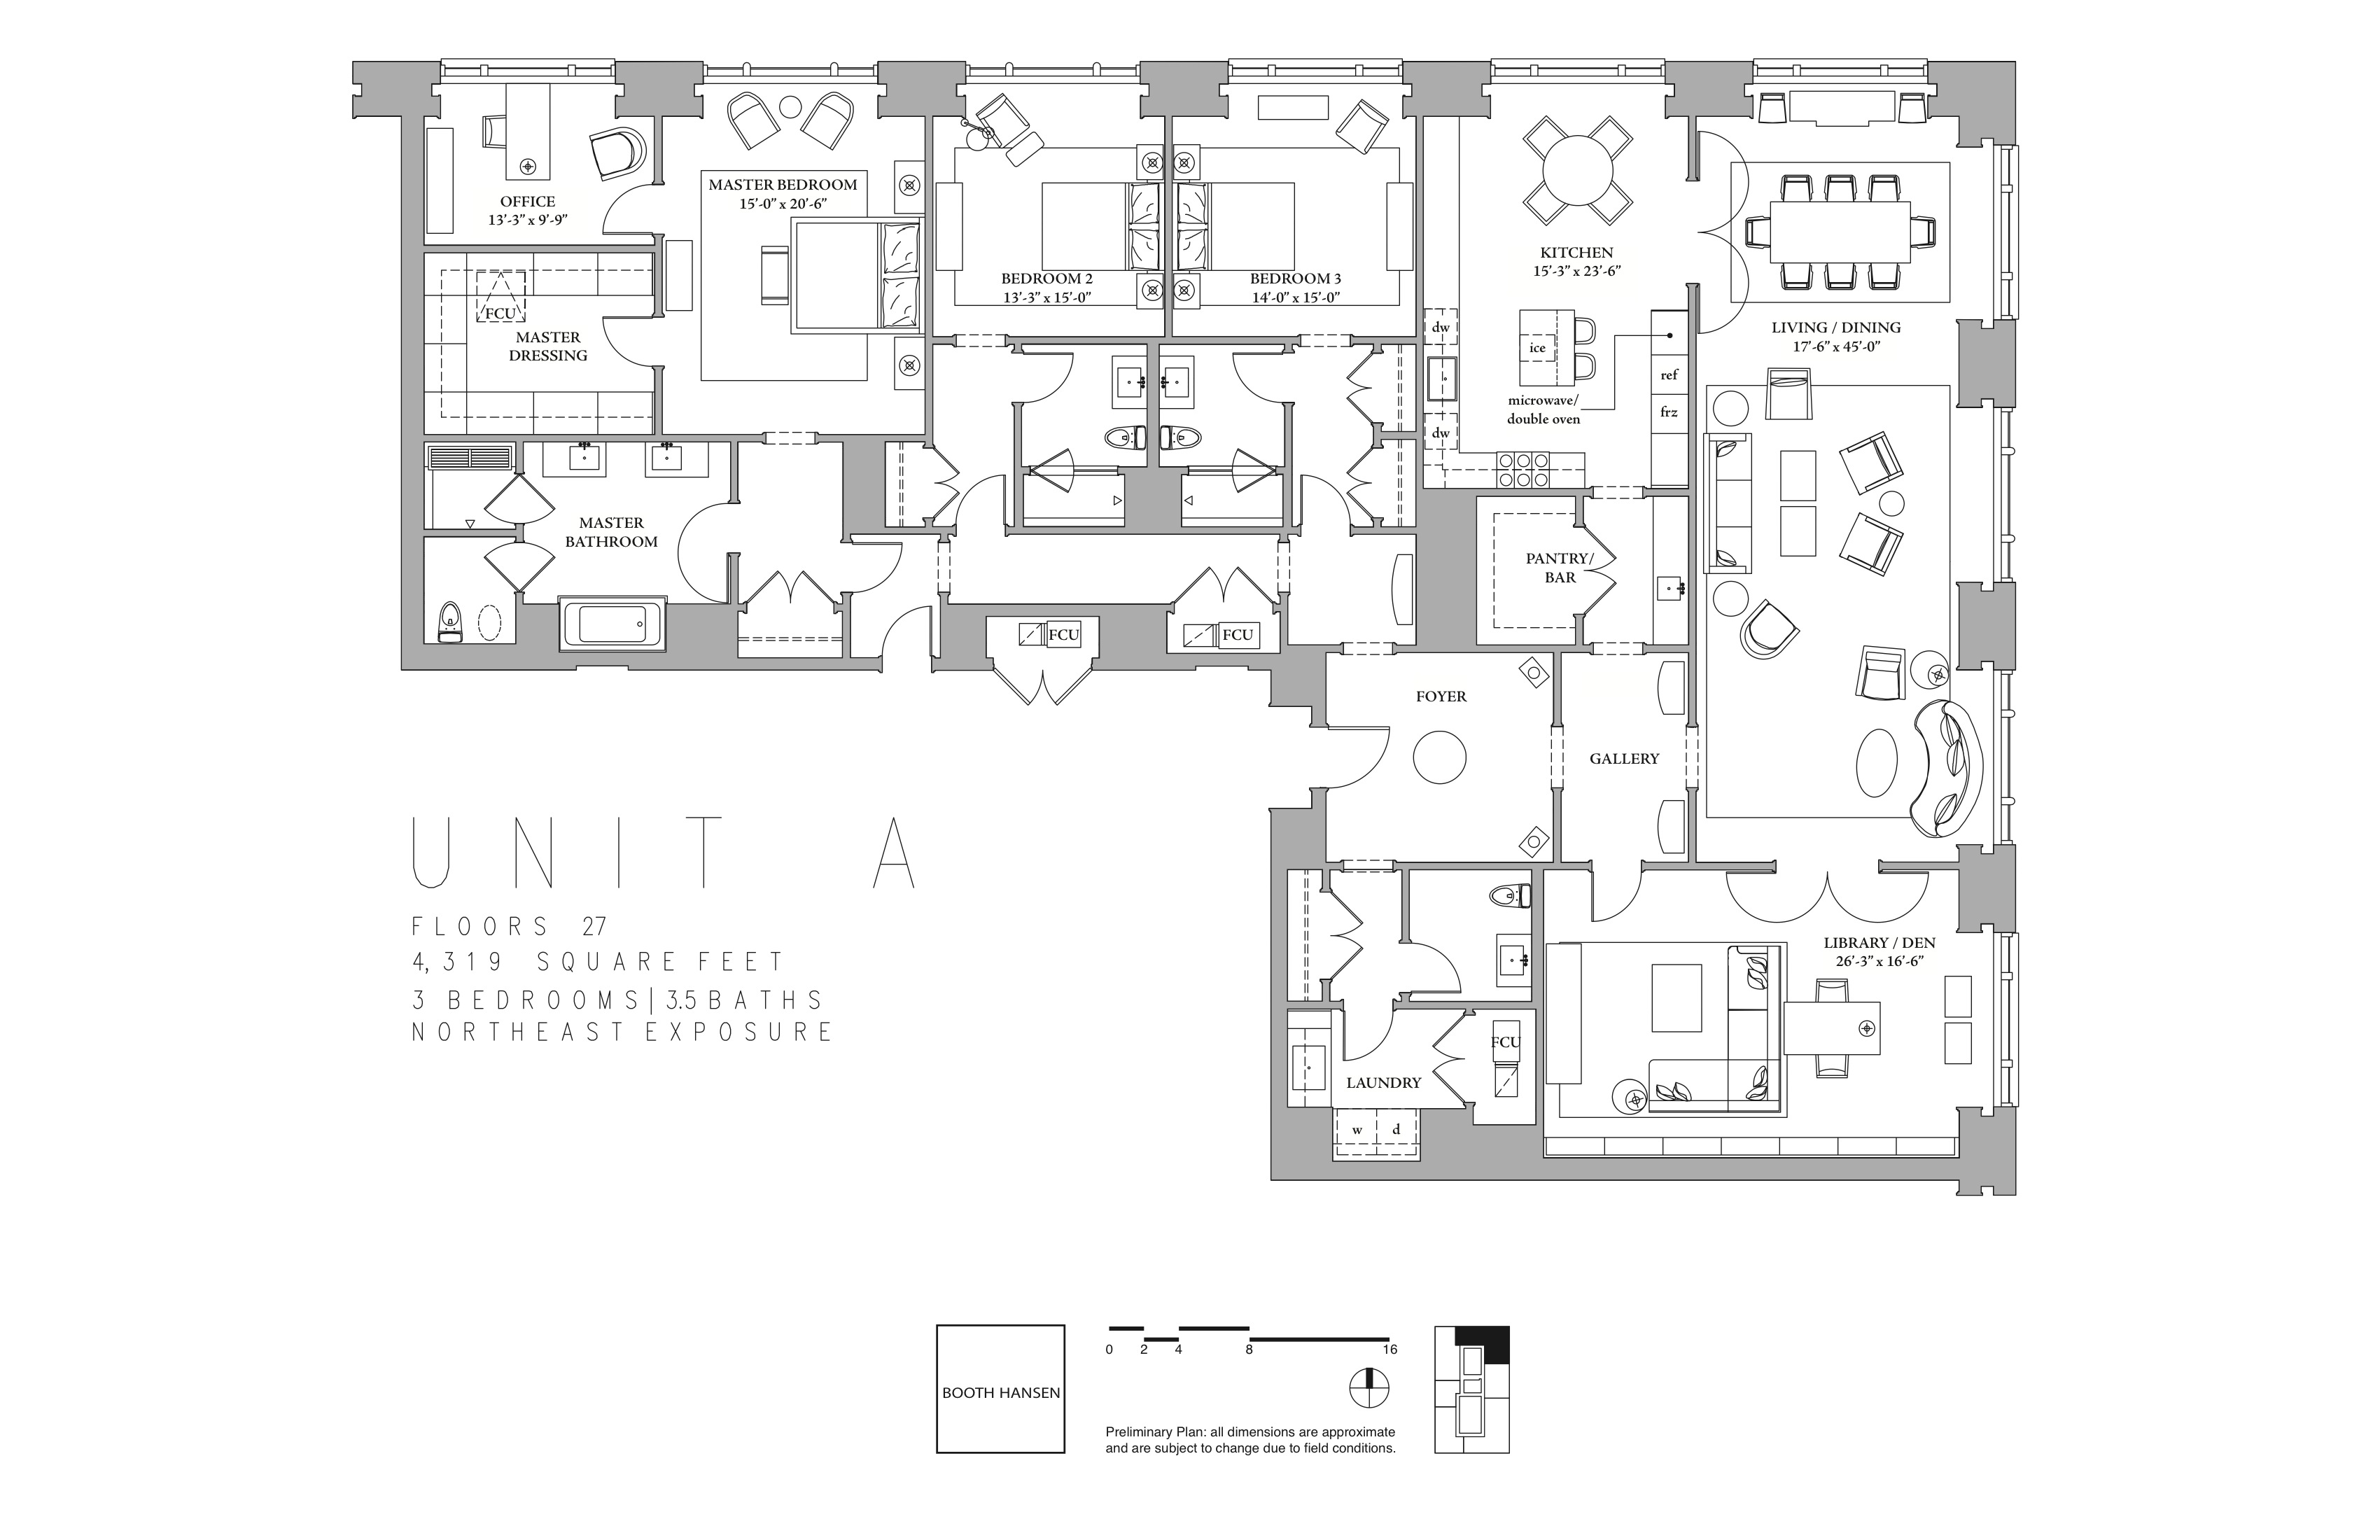 House designs floor plans usa best free home design for Best home designs usa